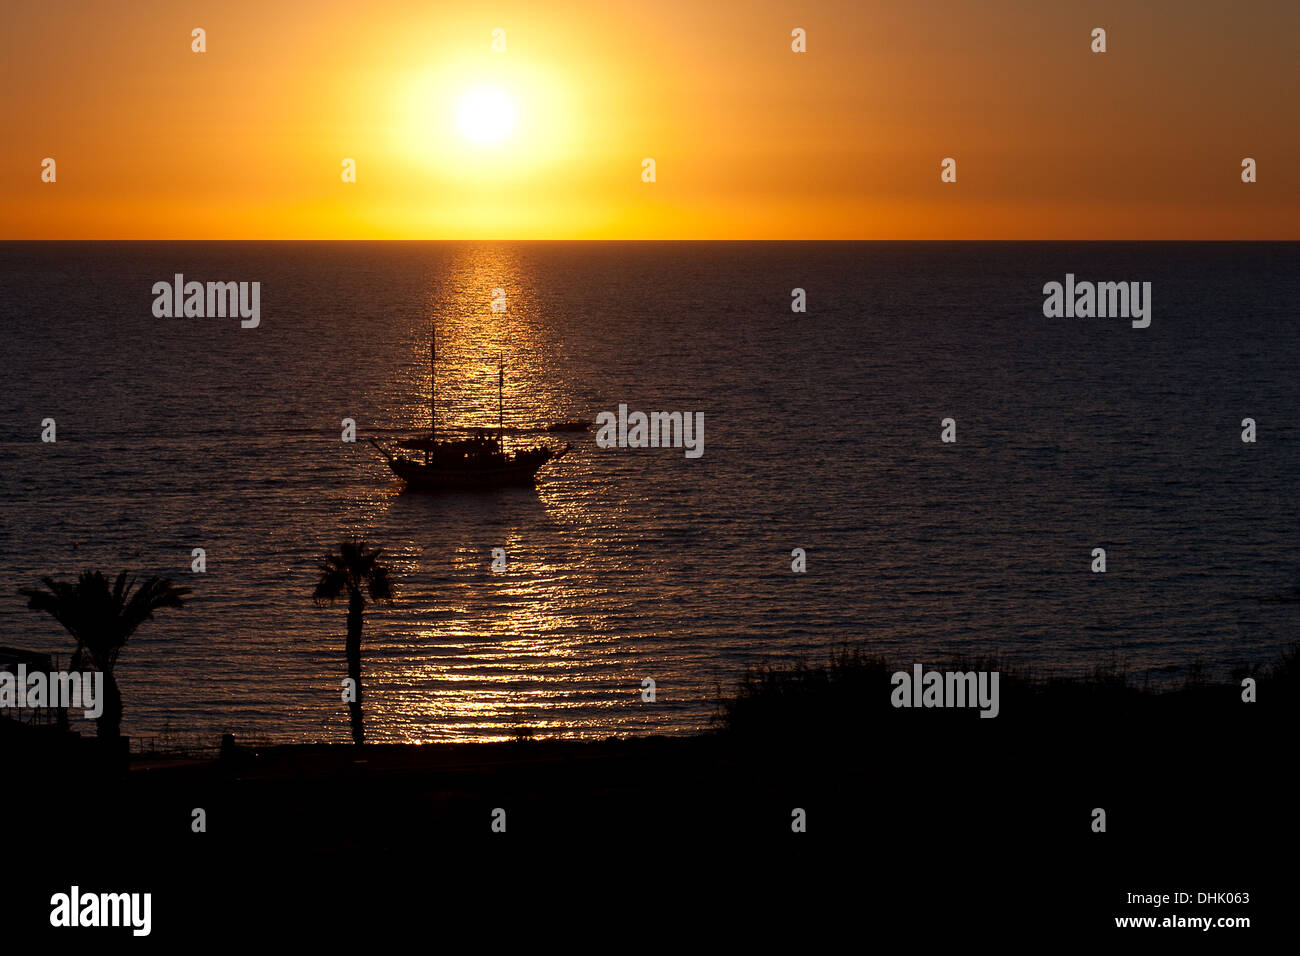 Sunset in Paphos Cyprus - Stock Image